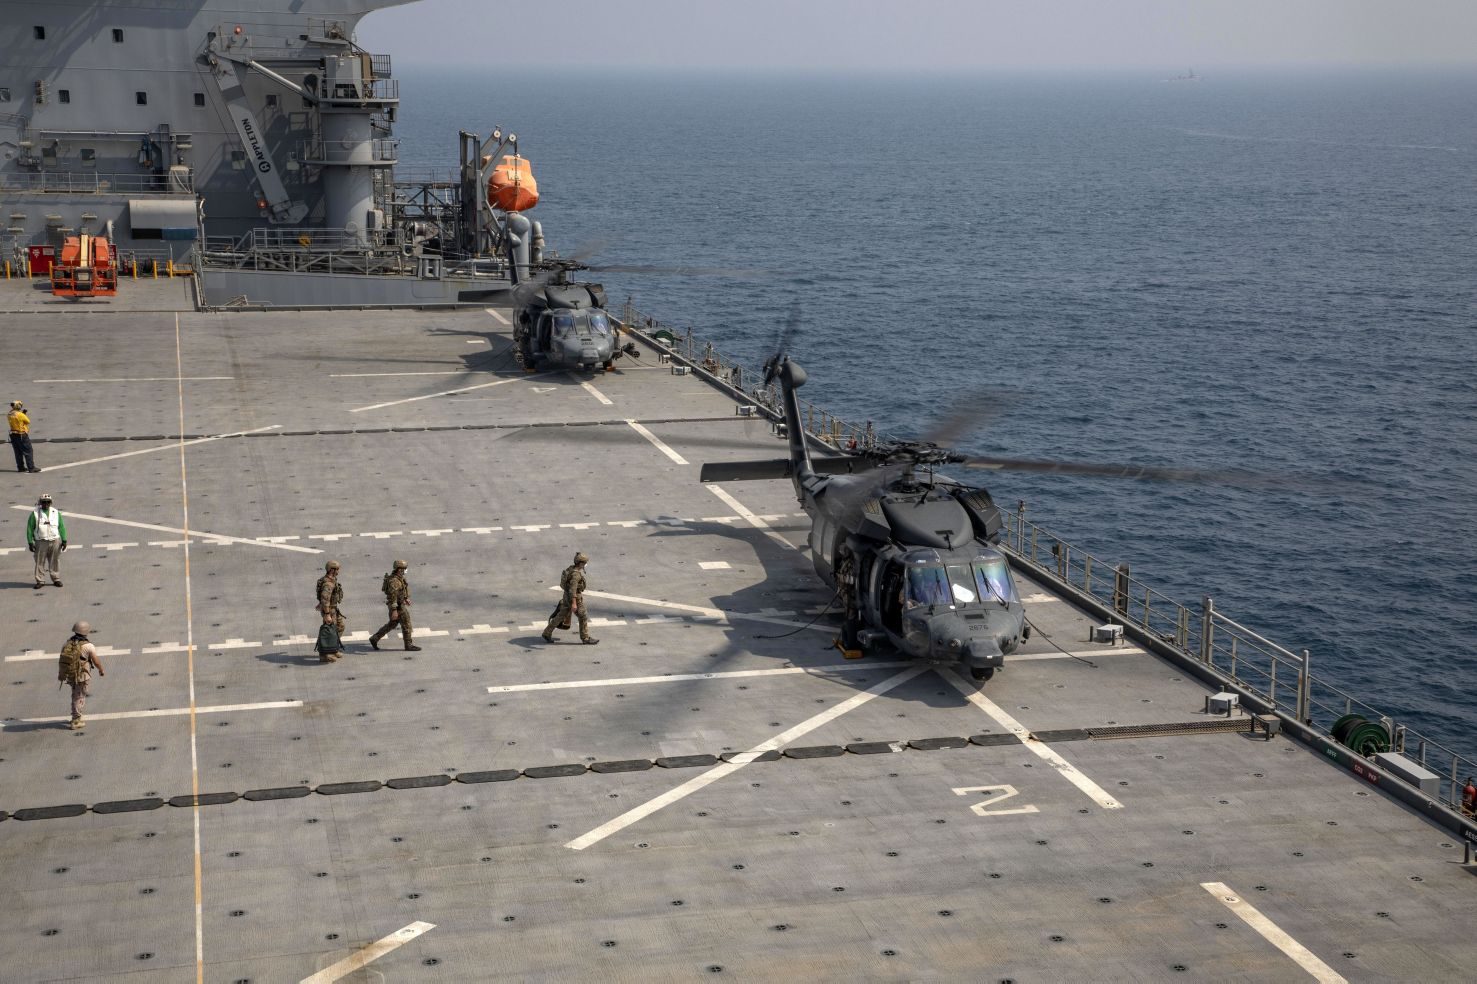 US personnel board an Emirati UH-60L Black Hawk that landed on USS          Lewis B Puller          during a live-fire exercise in the Gulf on 11 August.        (US Marine Corps    )